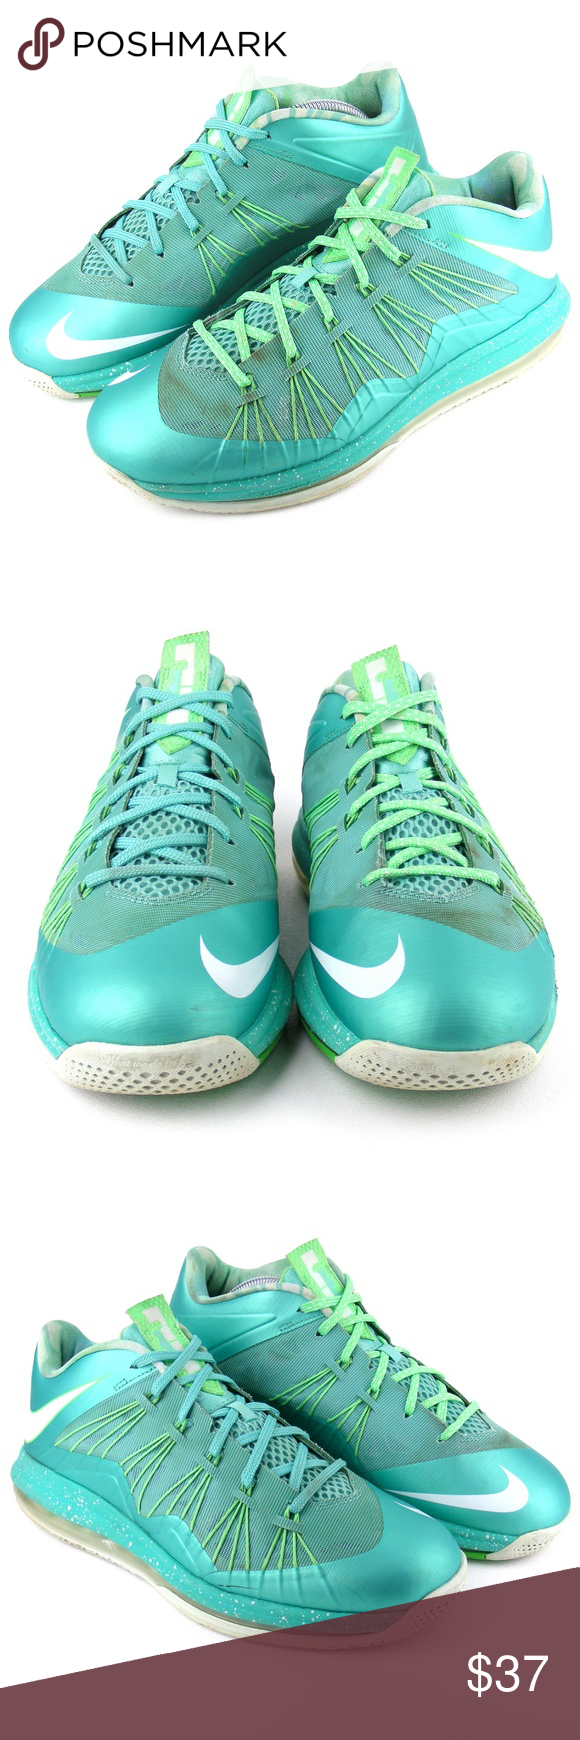 new concept 873f0 2dae7 Nike LeBron X Low Easter 579765-300 Sneakers 9.5 Nike LeBron X Low Easter  579765